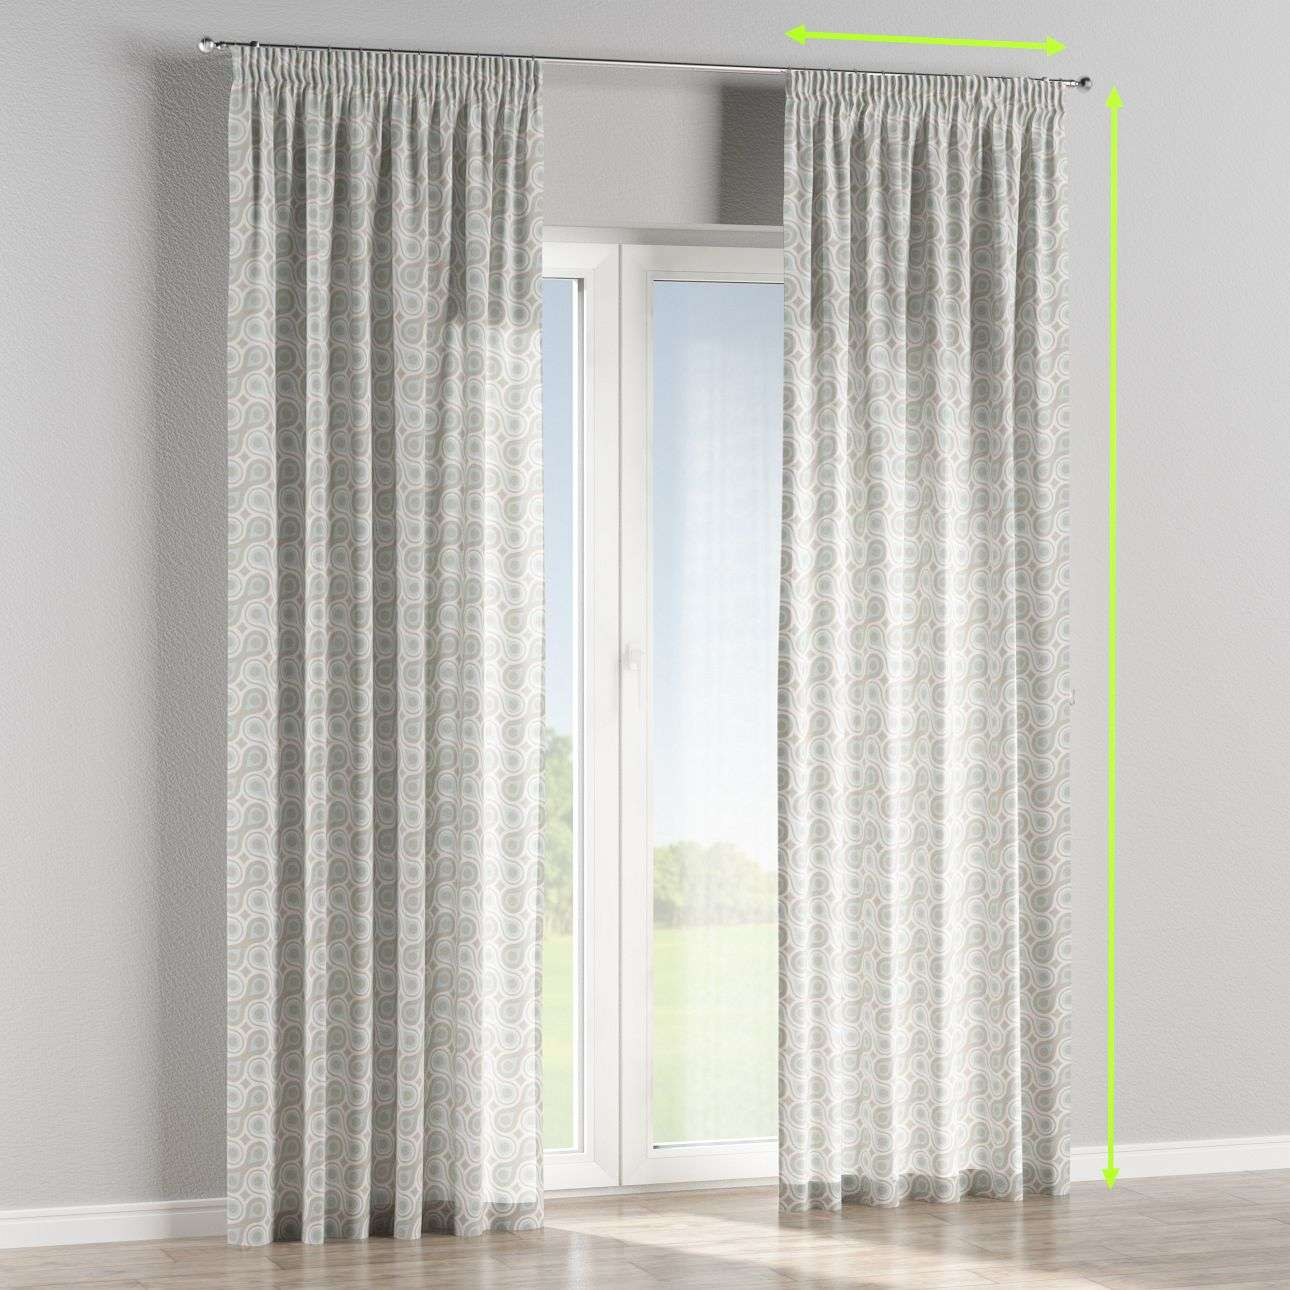 Pencil pleat curtains in collection Flowers, fabric: 311-13